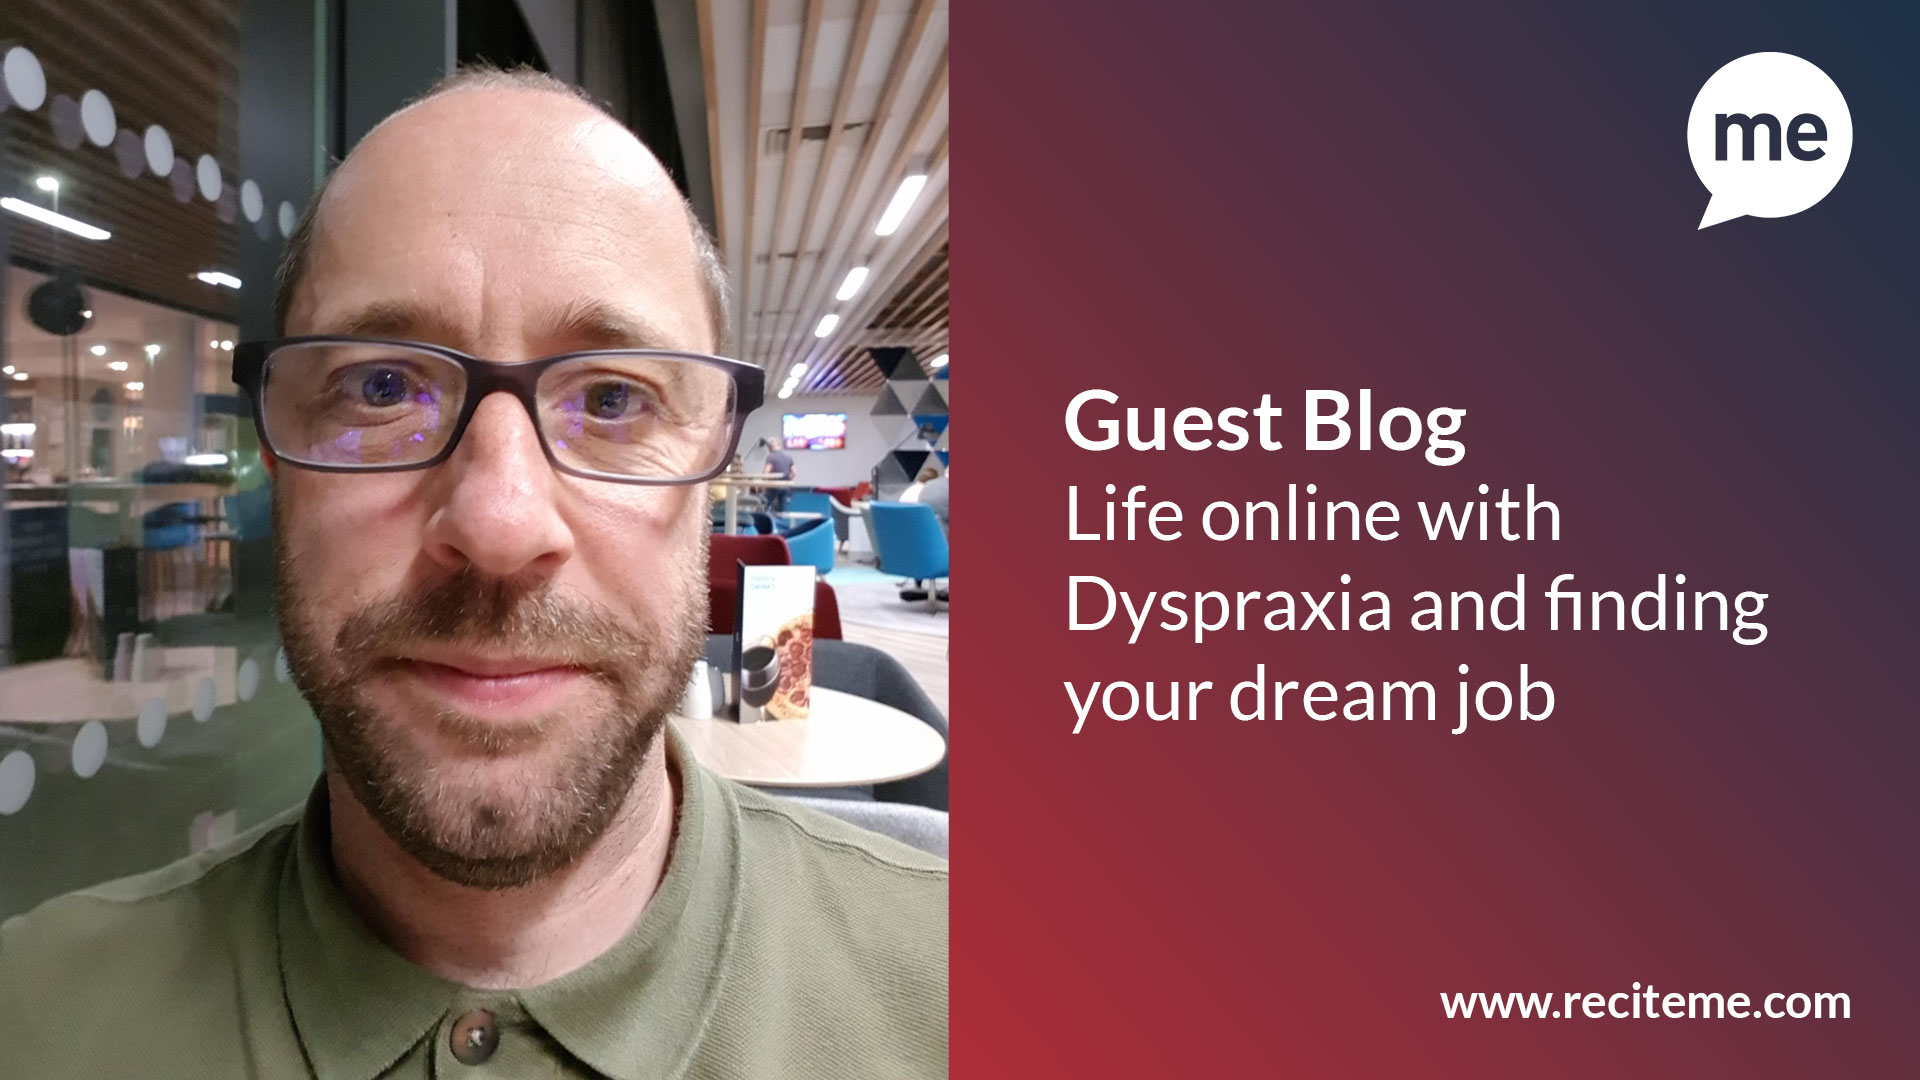 Life online with Dyspraxia and finding your dream job